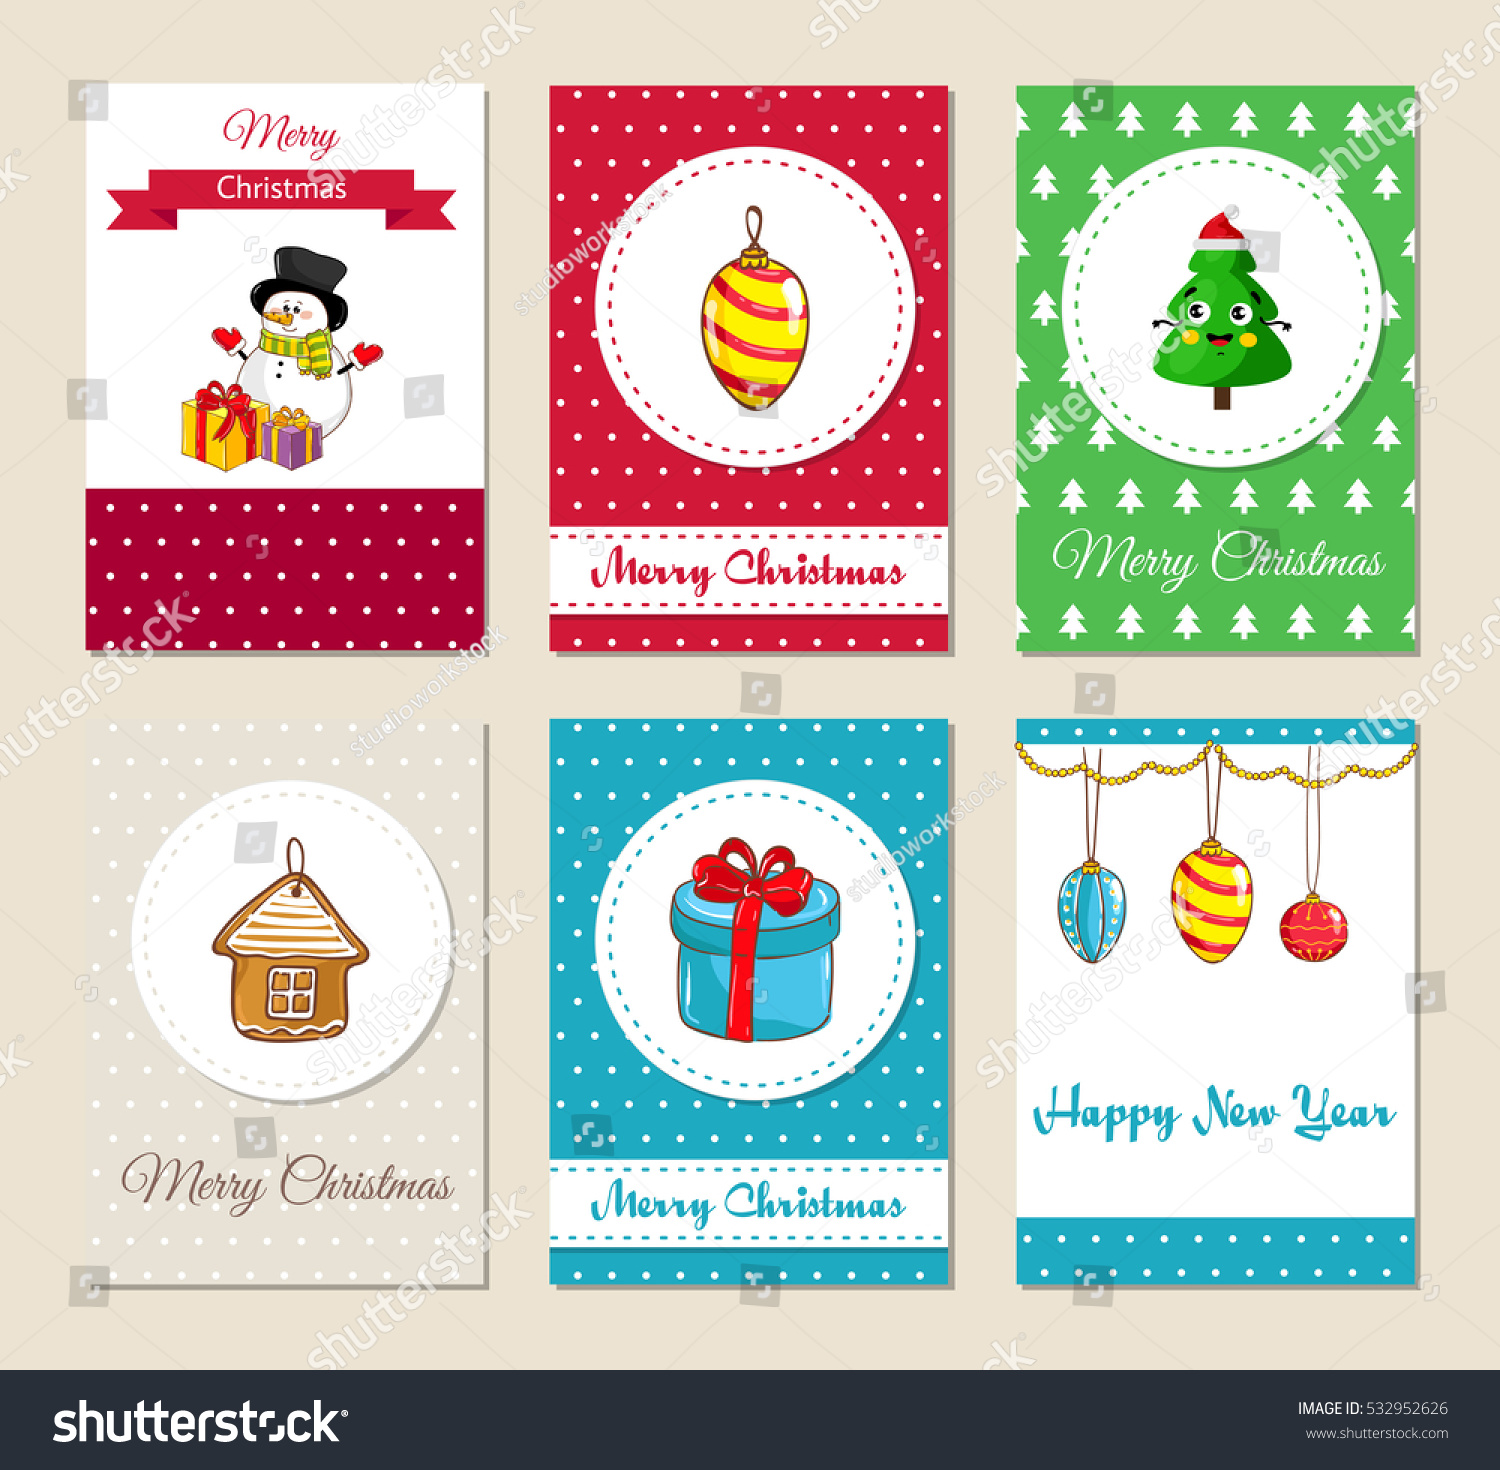 Cute Christmas Party Invitations Choice Image - Party Invitations ...